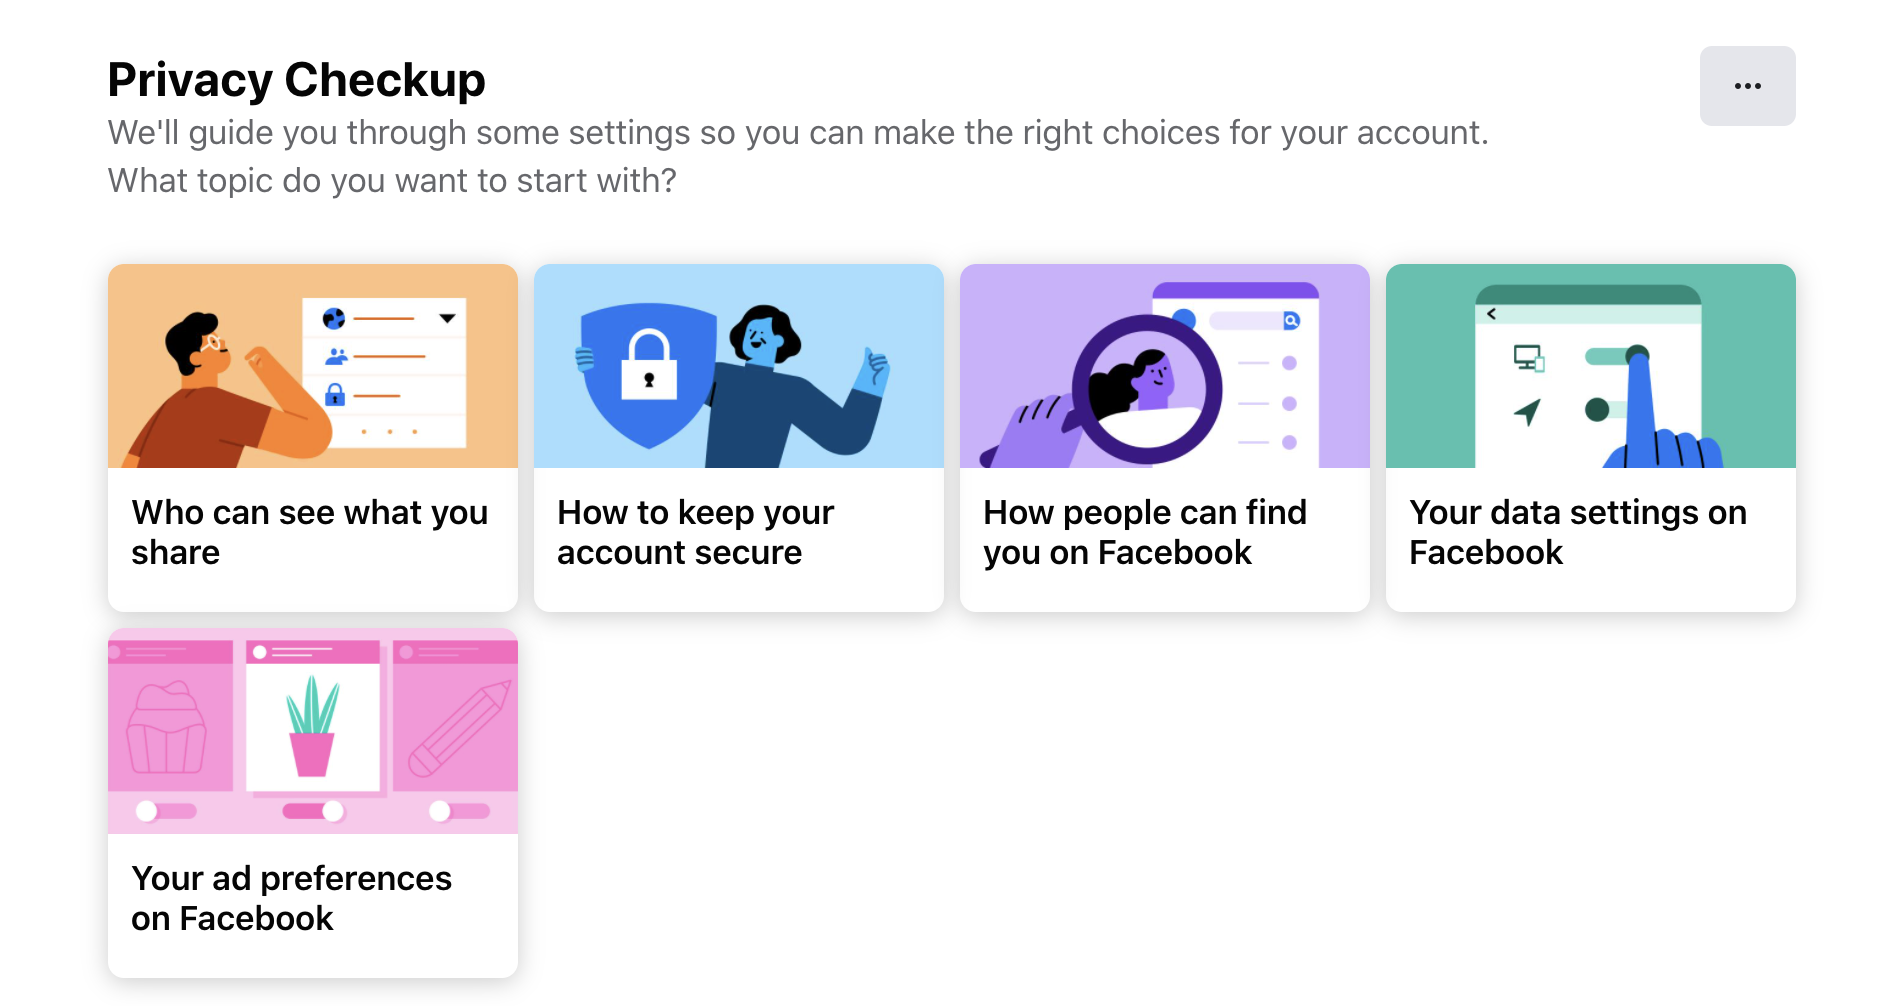 Easily navigate and choose your settings for everything from ad preferences to how people can find you.